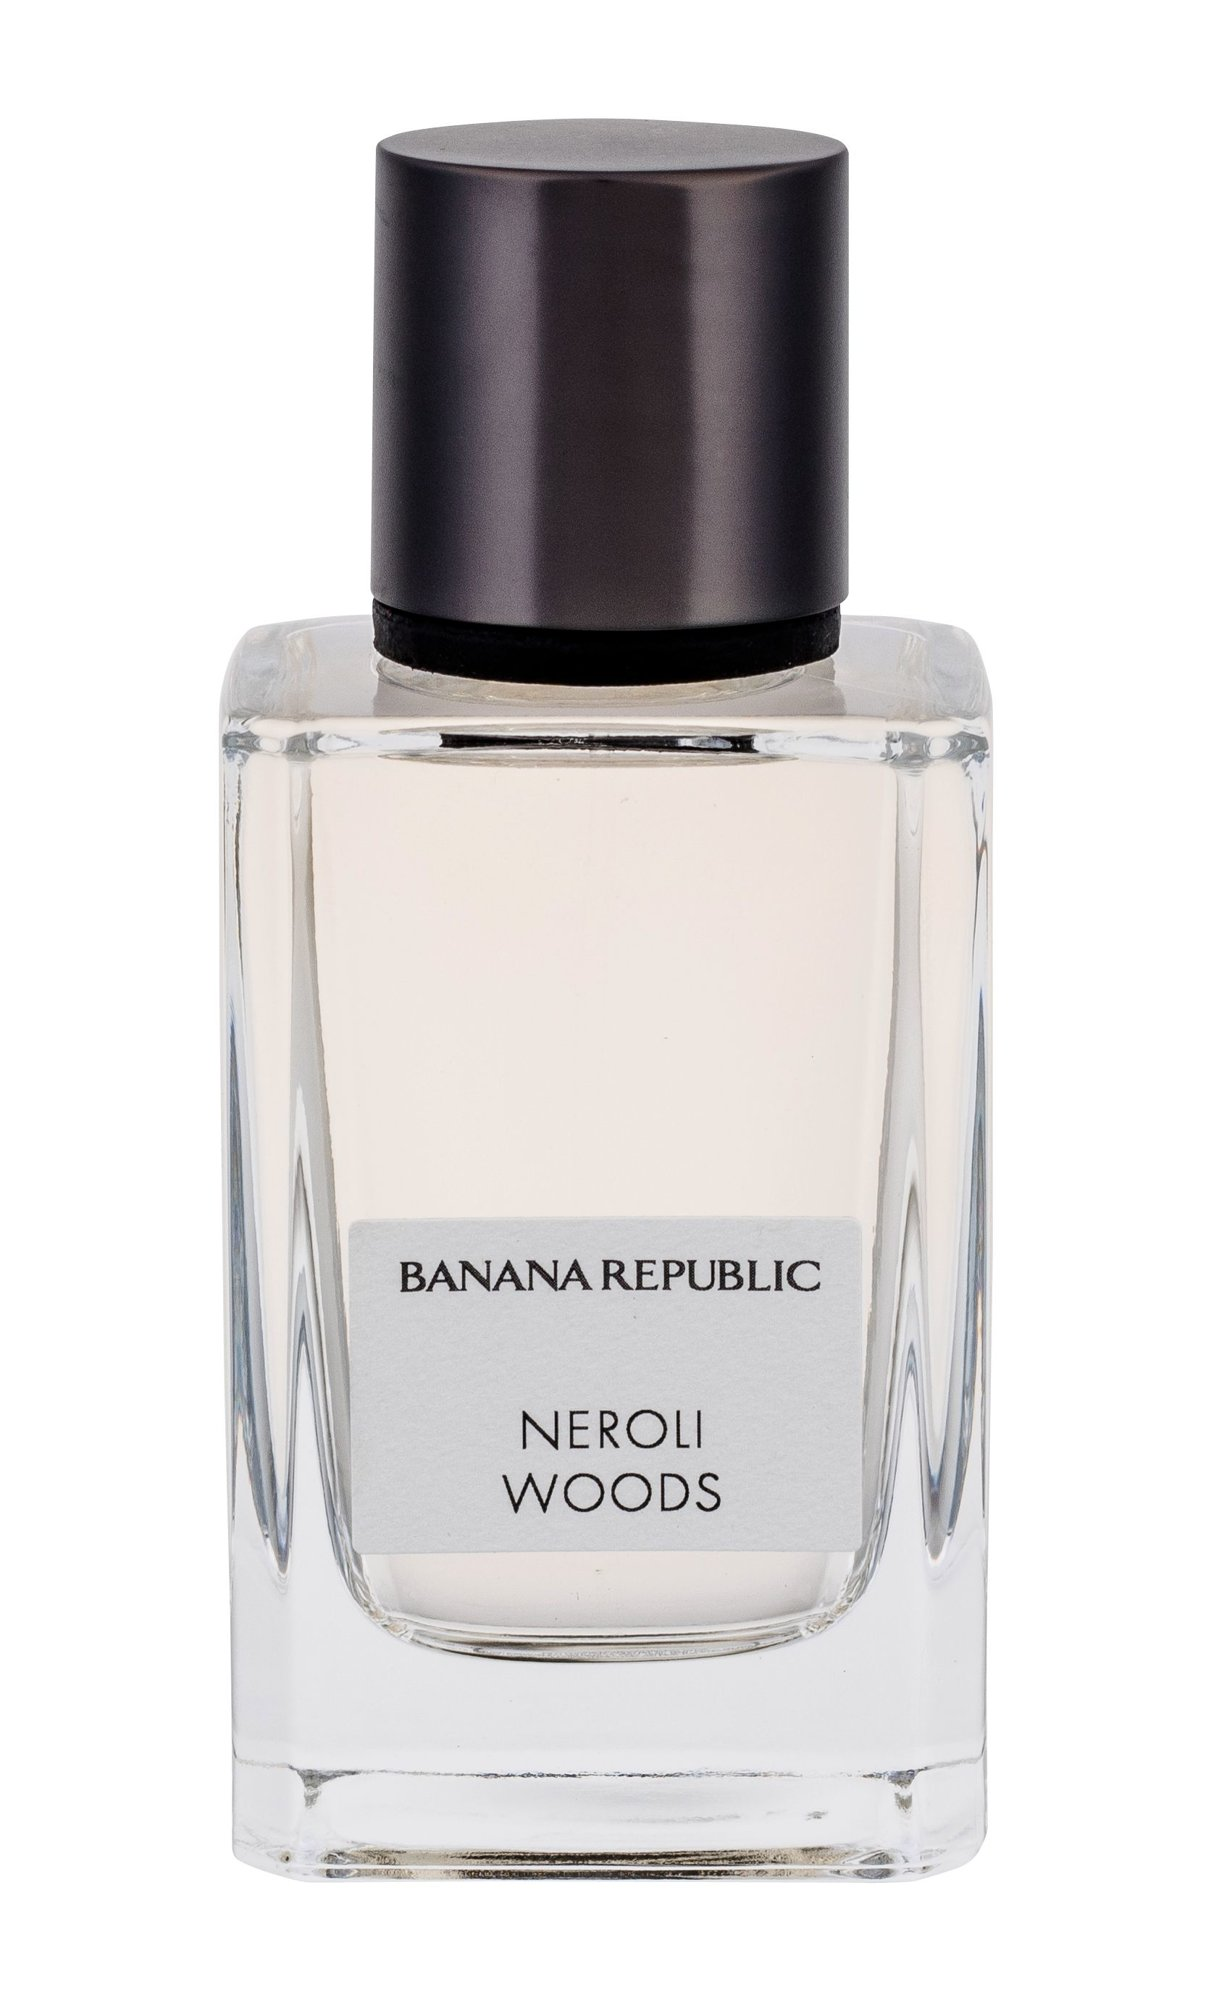 Banana Republic Neroli Woods Eau de Parfum 75ml